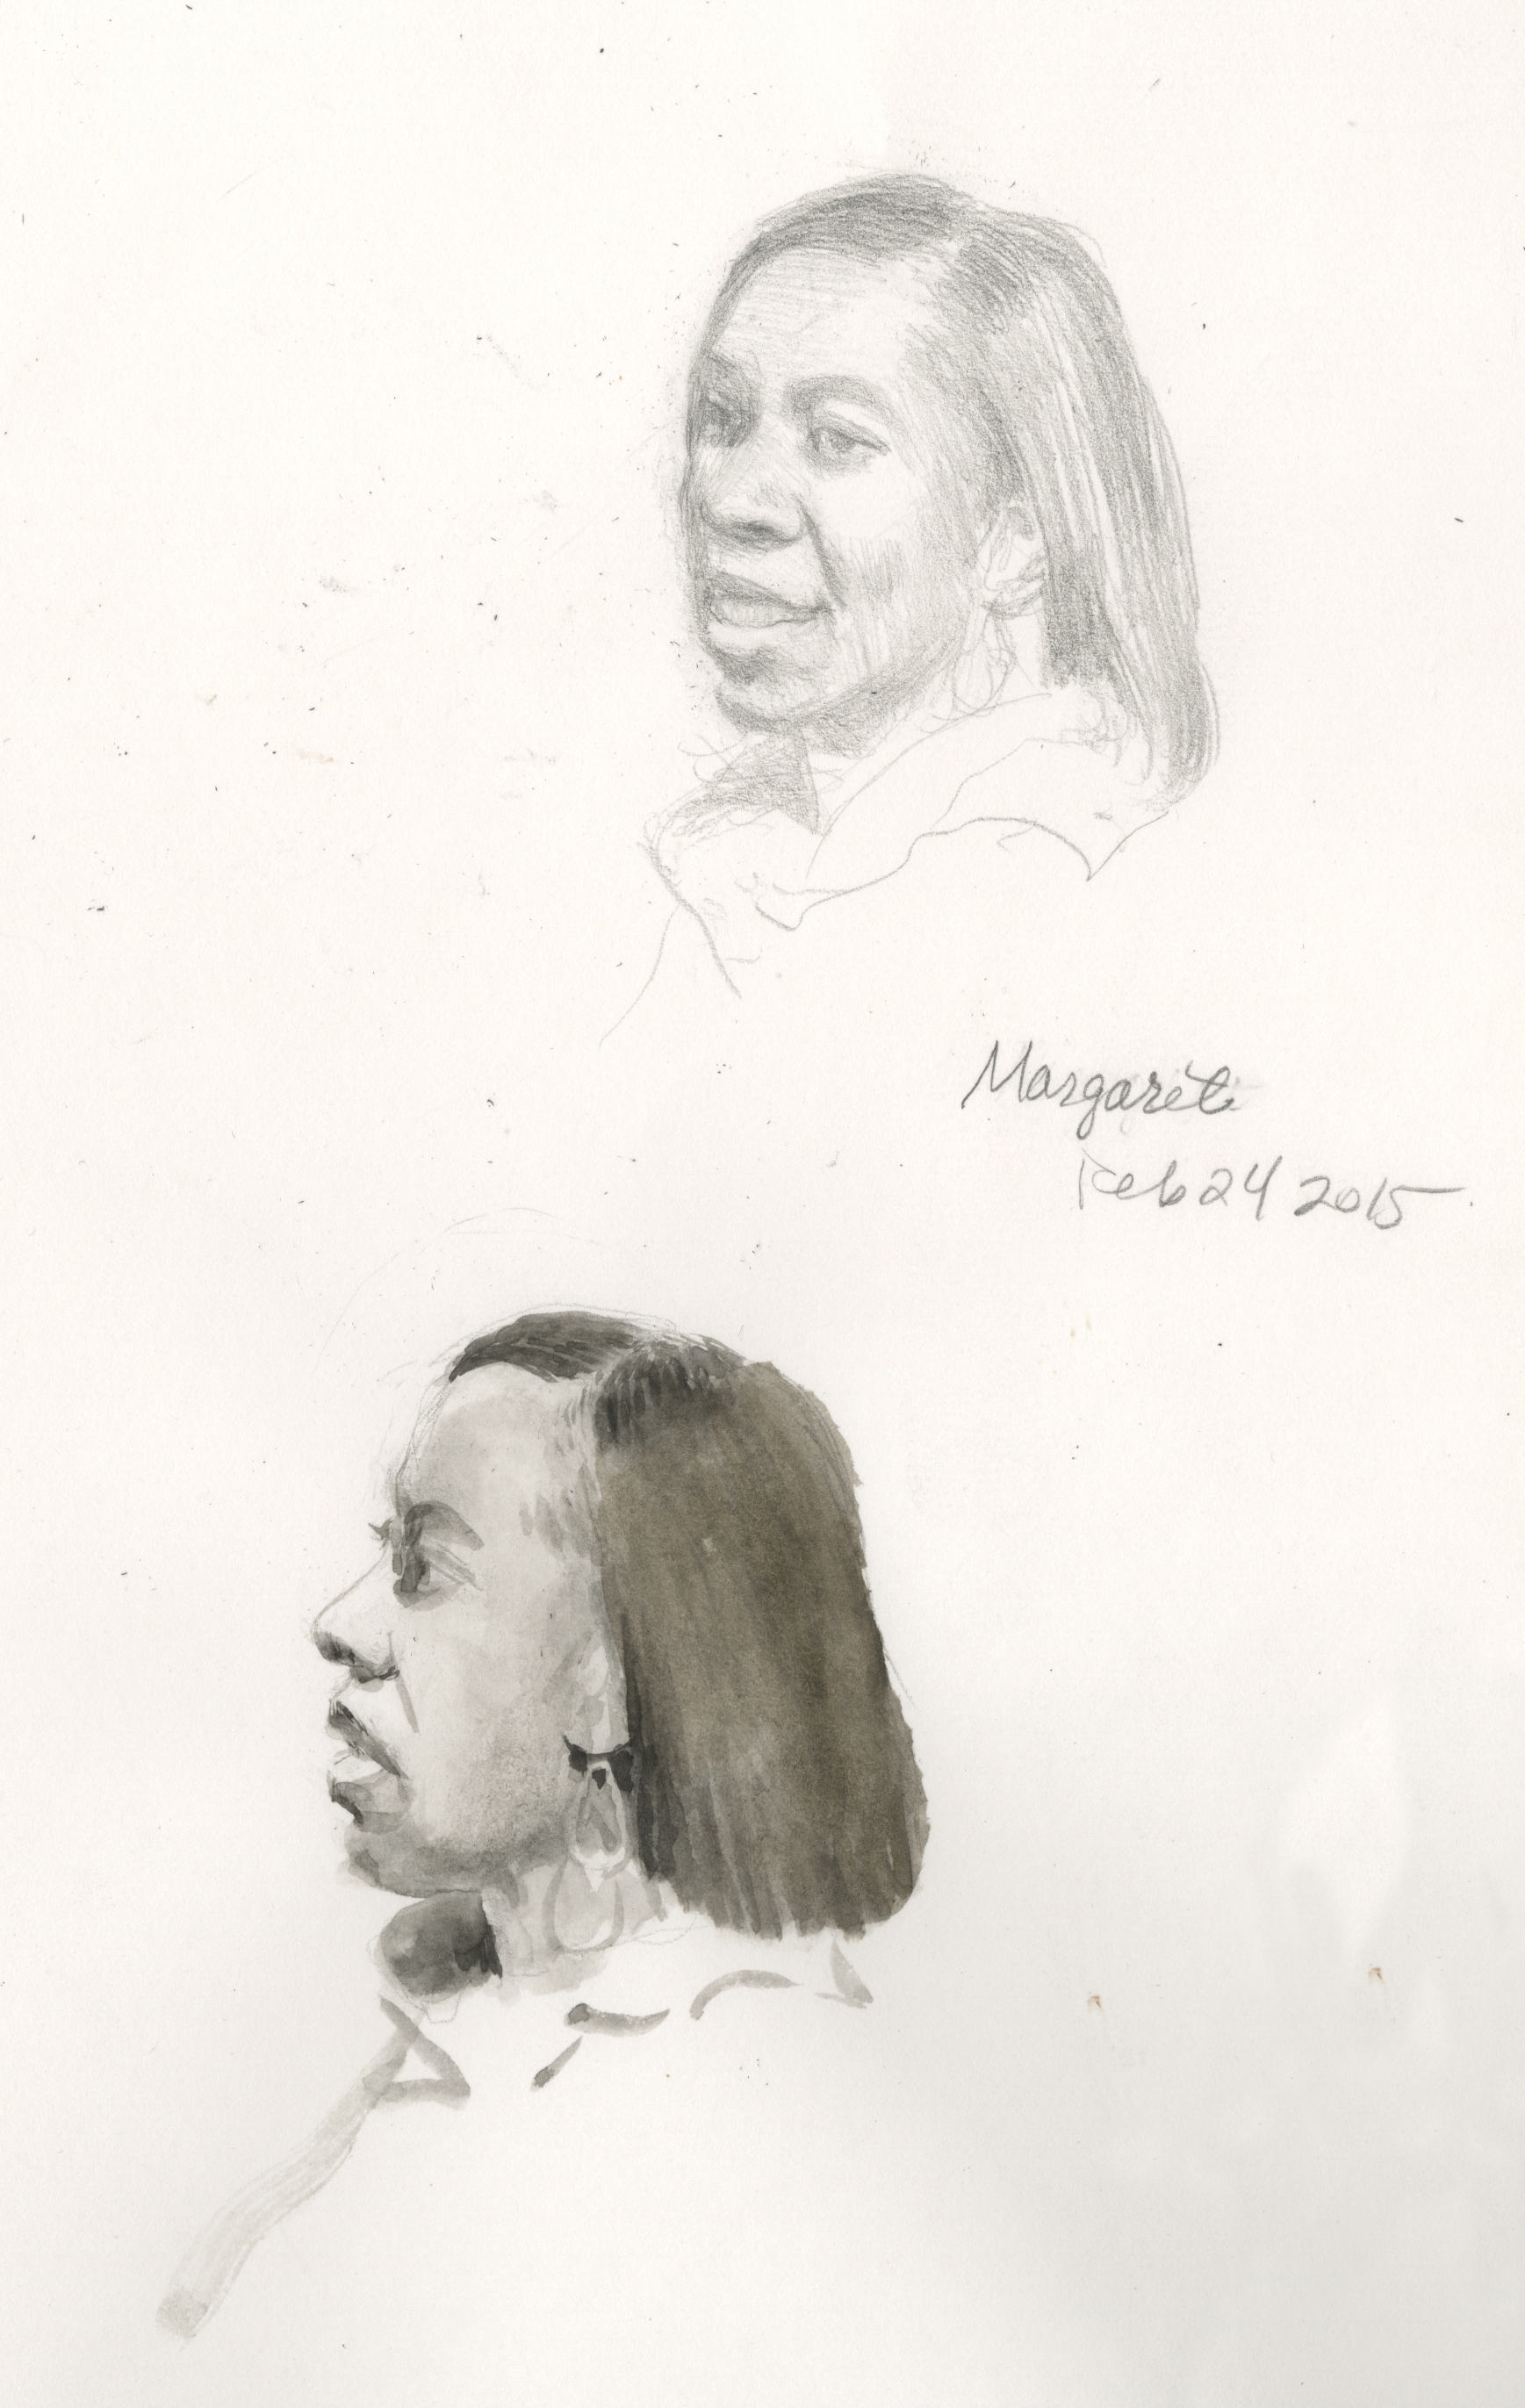 Margaret J., pencil and watercolor